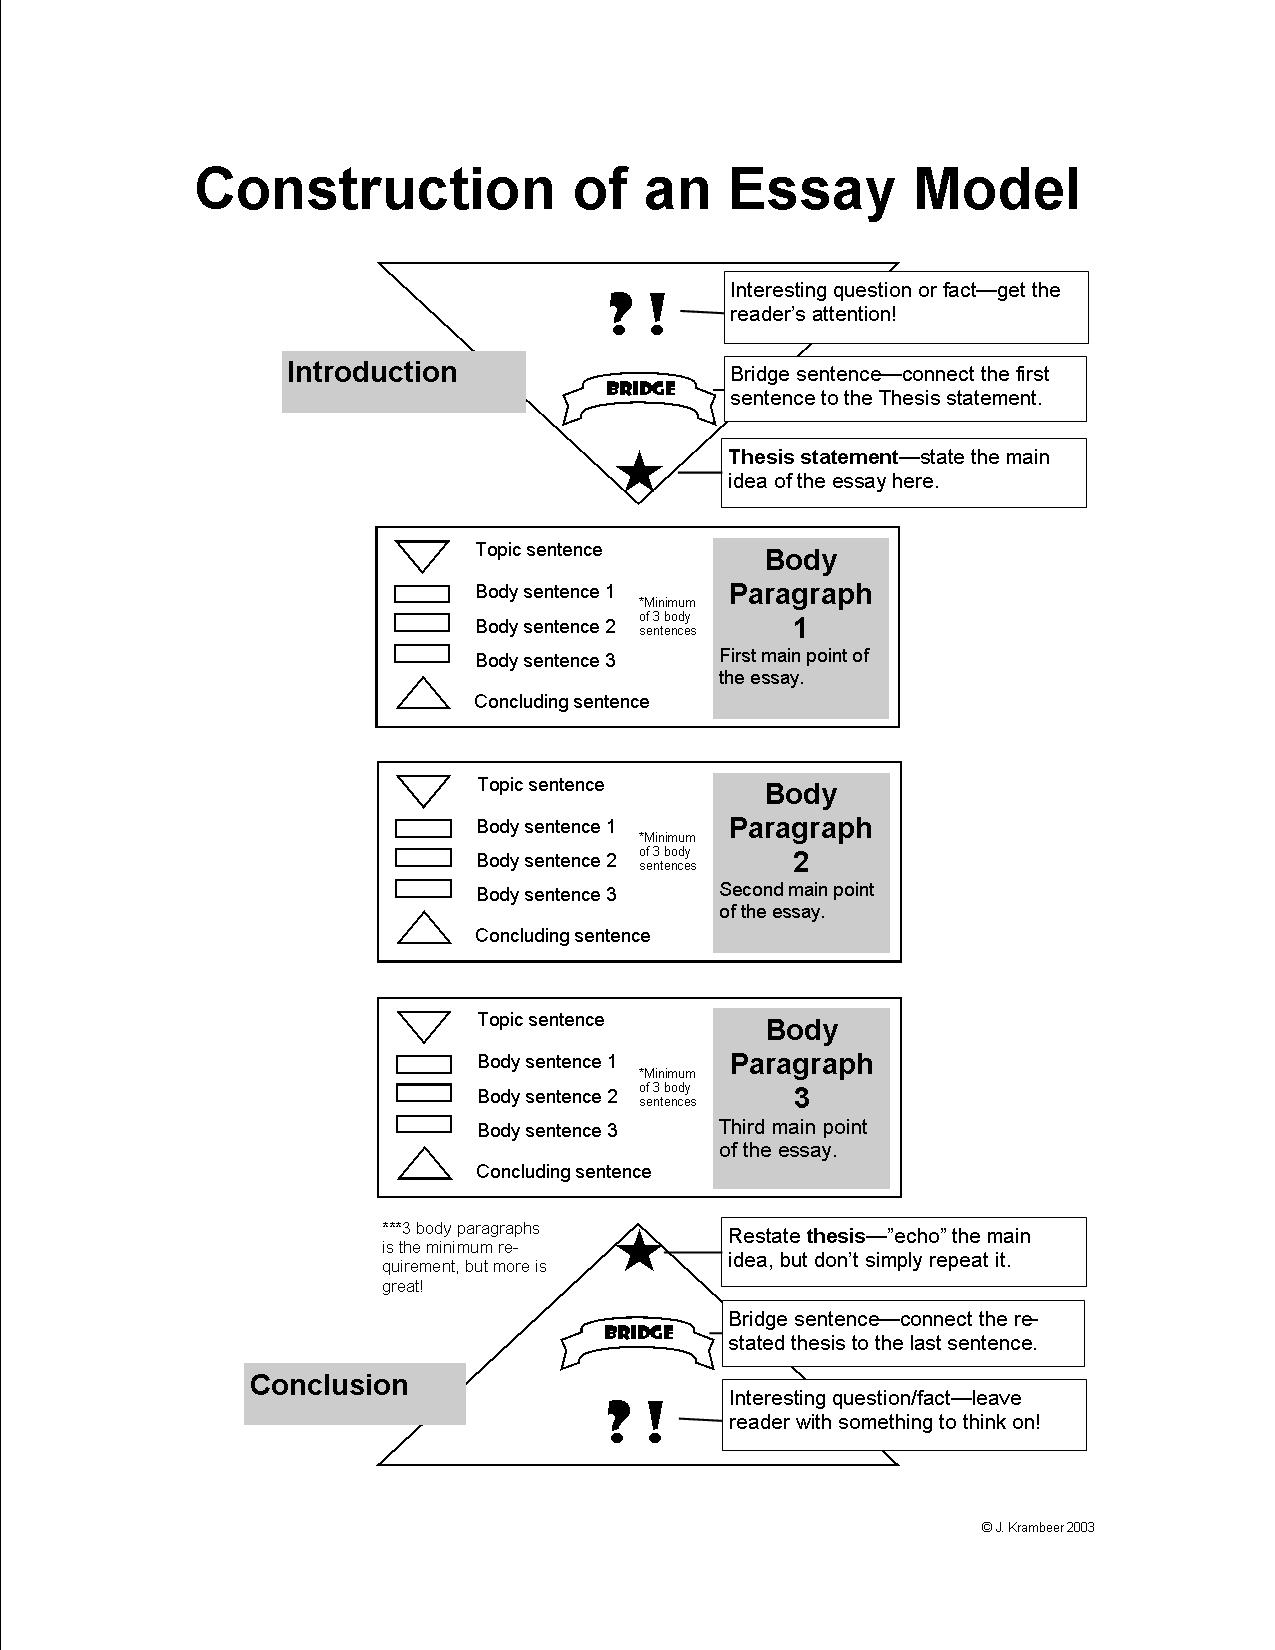 cool essay school is cool essay model cool essay typer website  school is cool essay model essay model